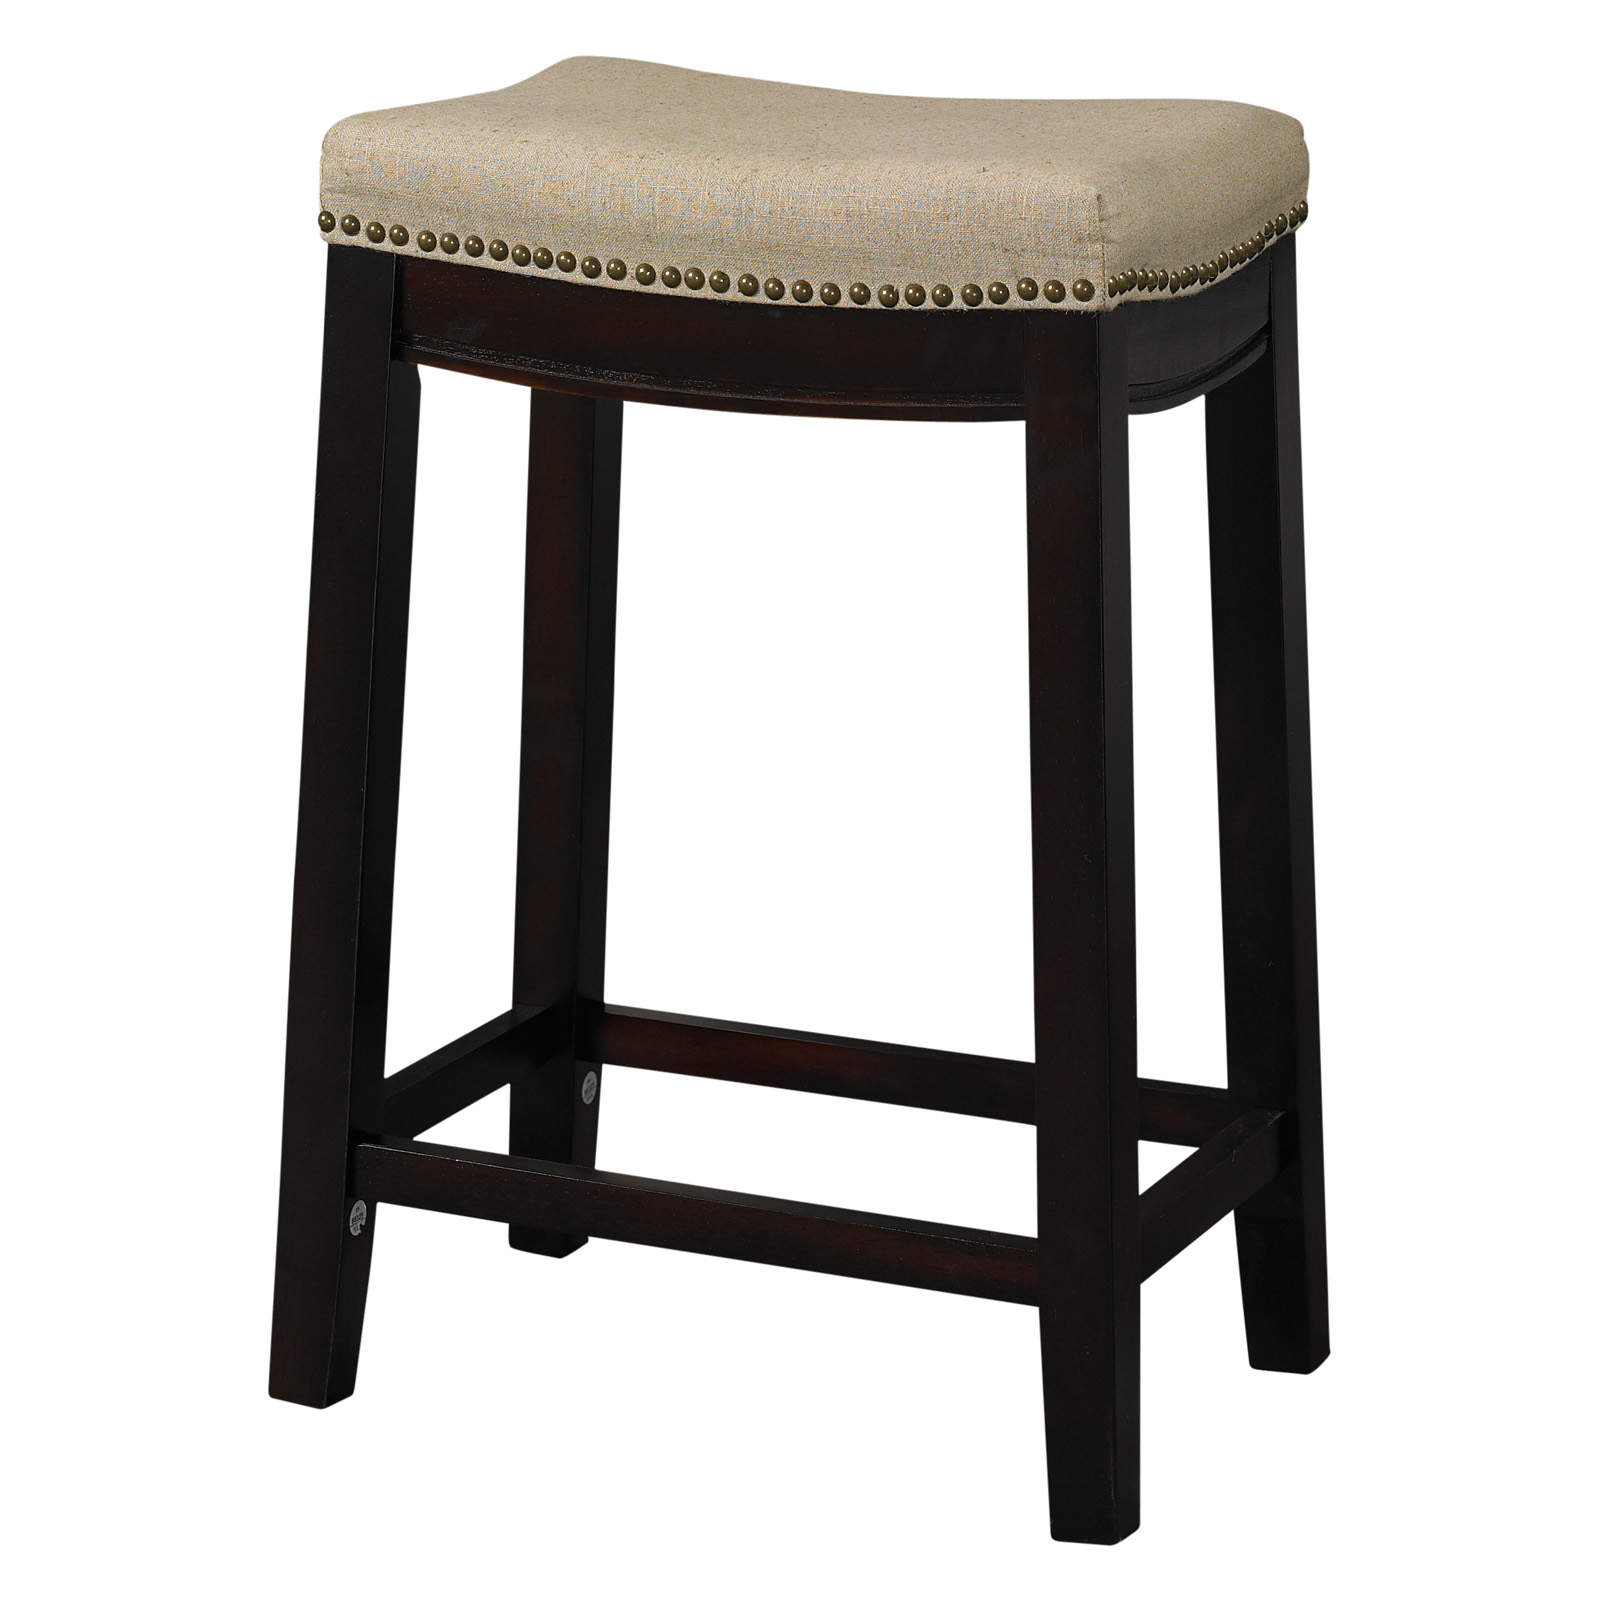 Linon Corey 30 in. Bar Stool - Udder Madness Brown | Hayneedle